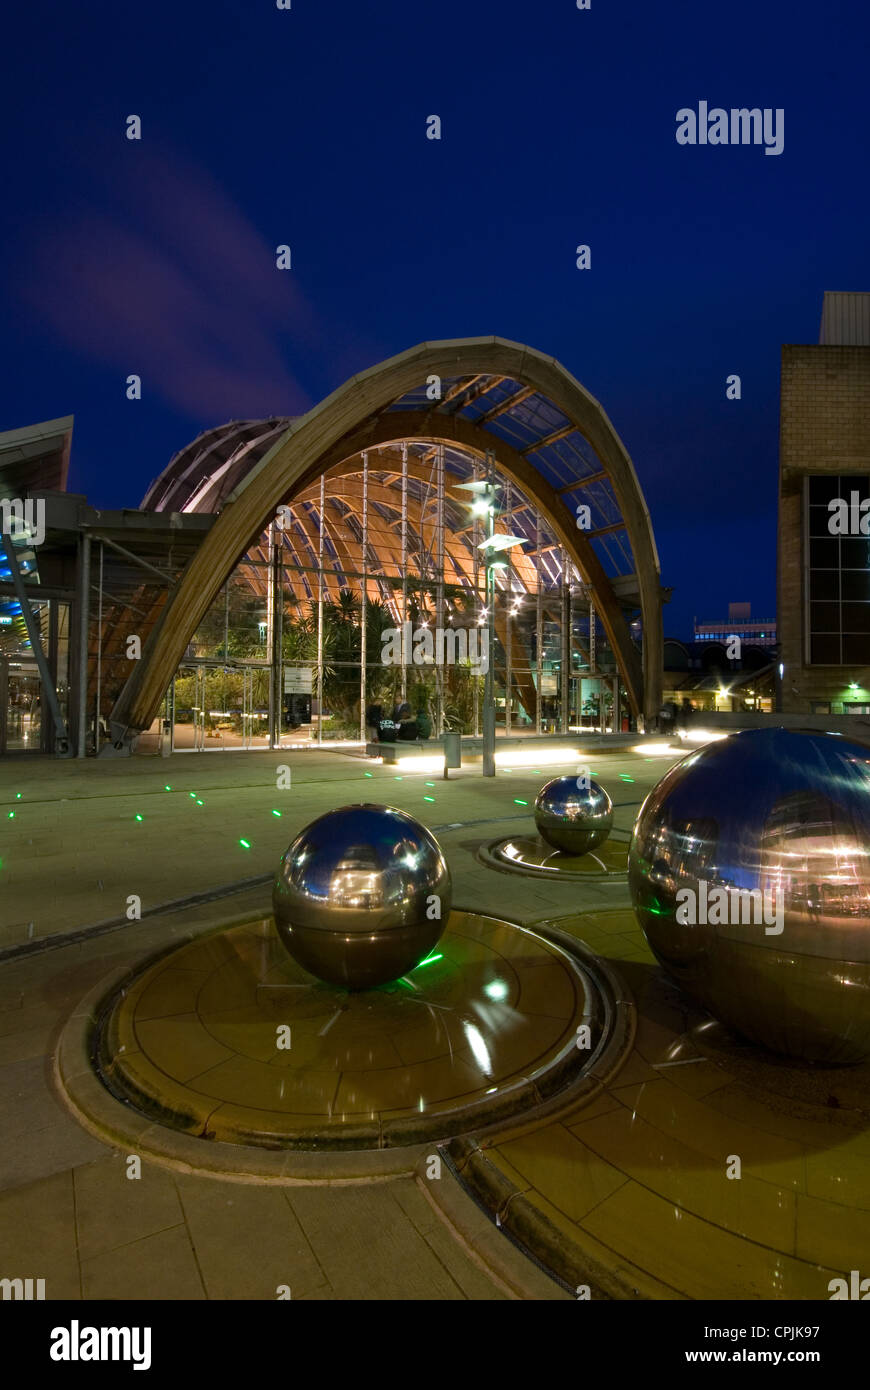 sheffield winter garden city of sheffield uk stock photo